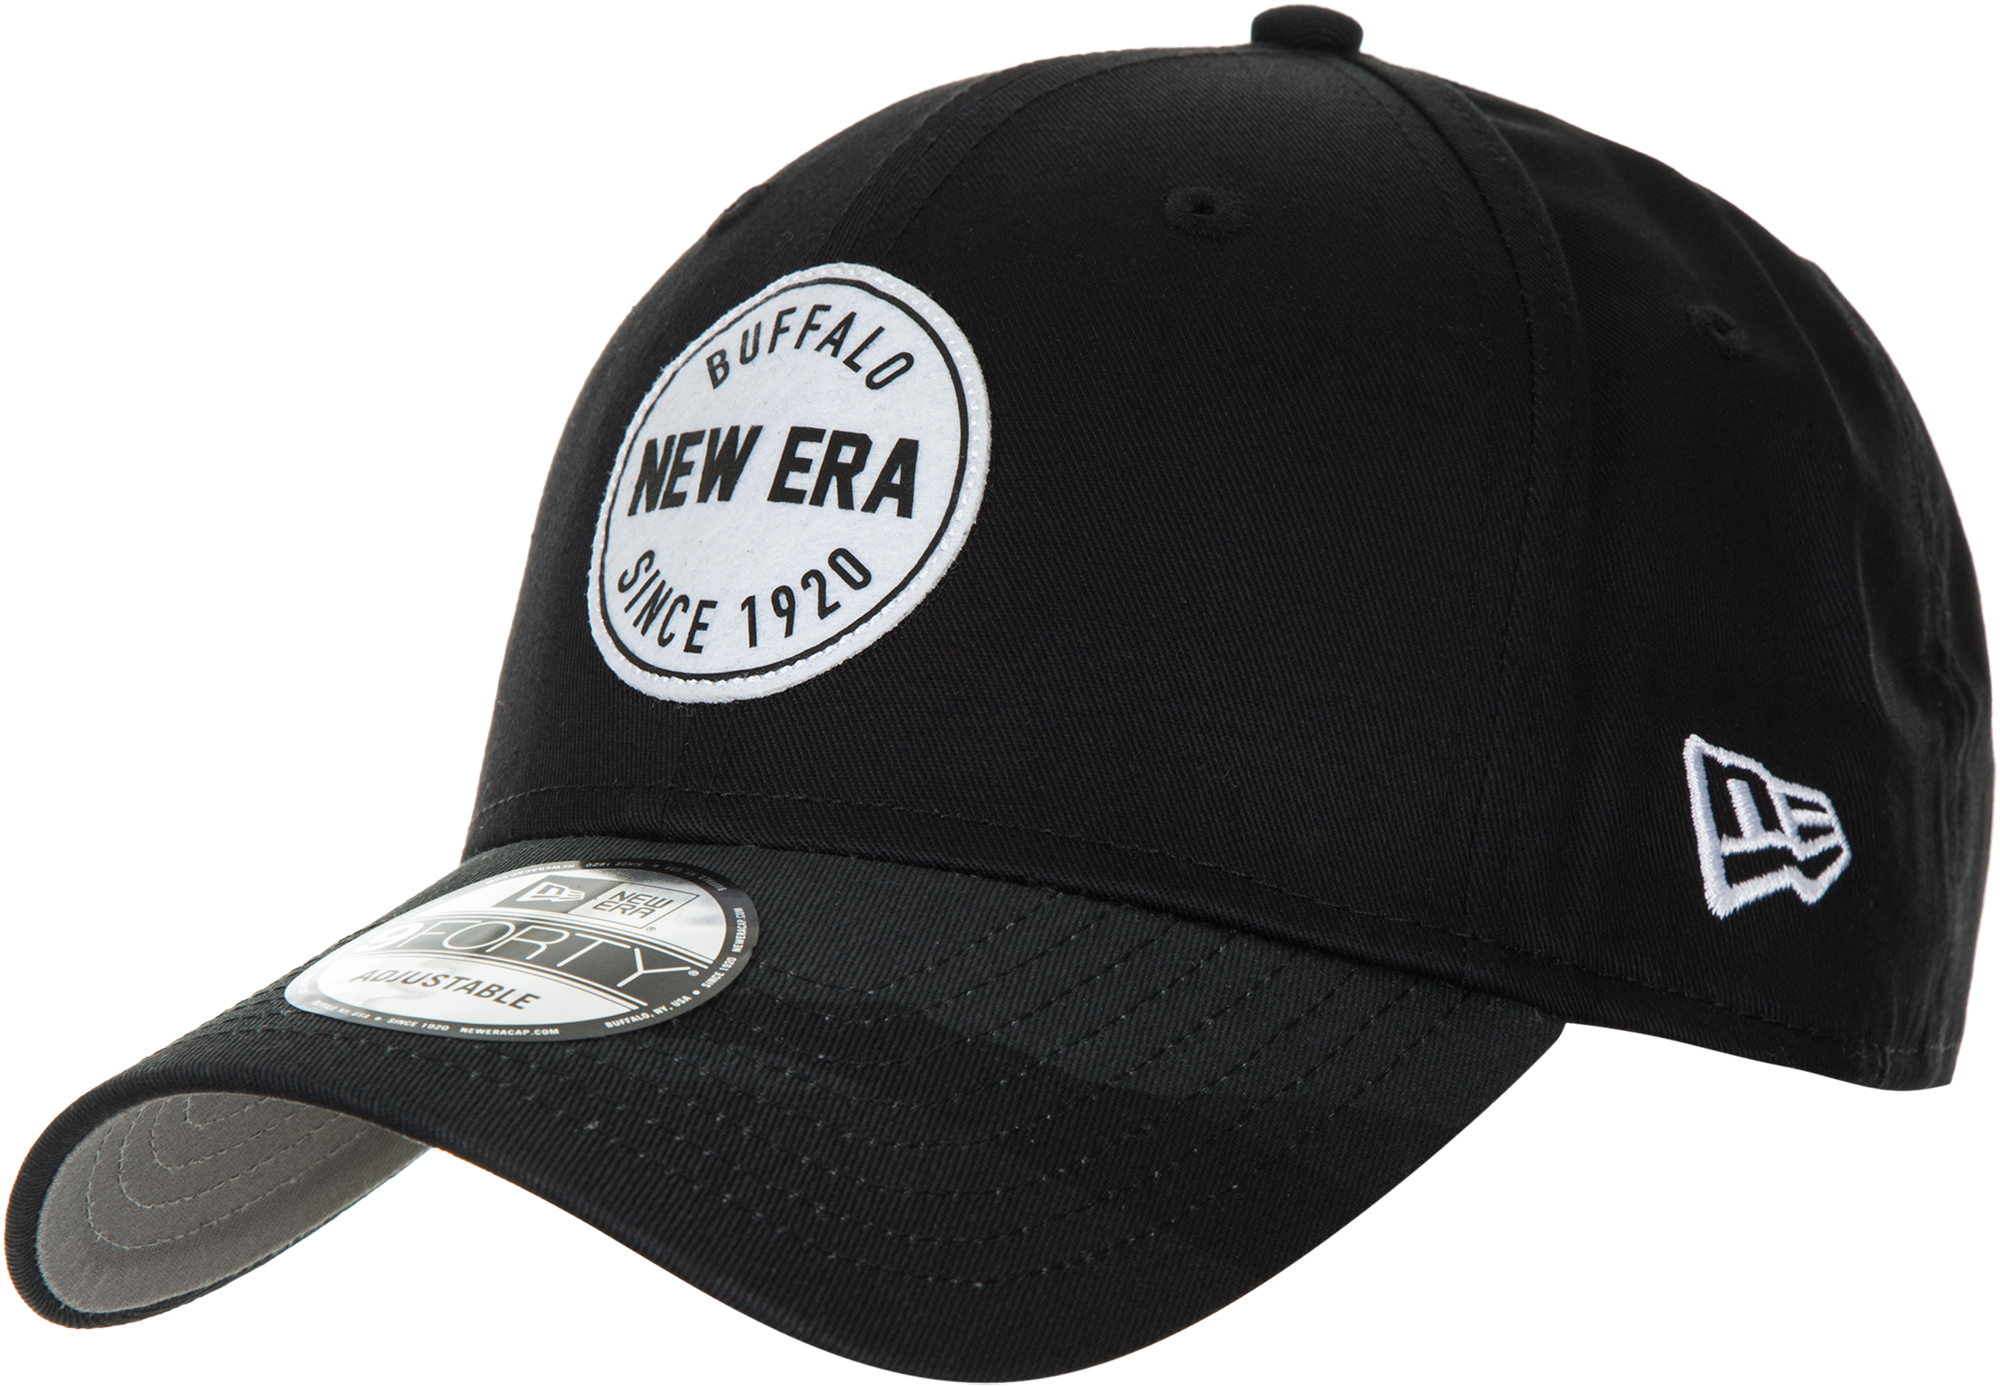 цена на New Era Бейсболка New Era 115 Ne Entry Patch Camo 940